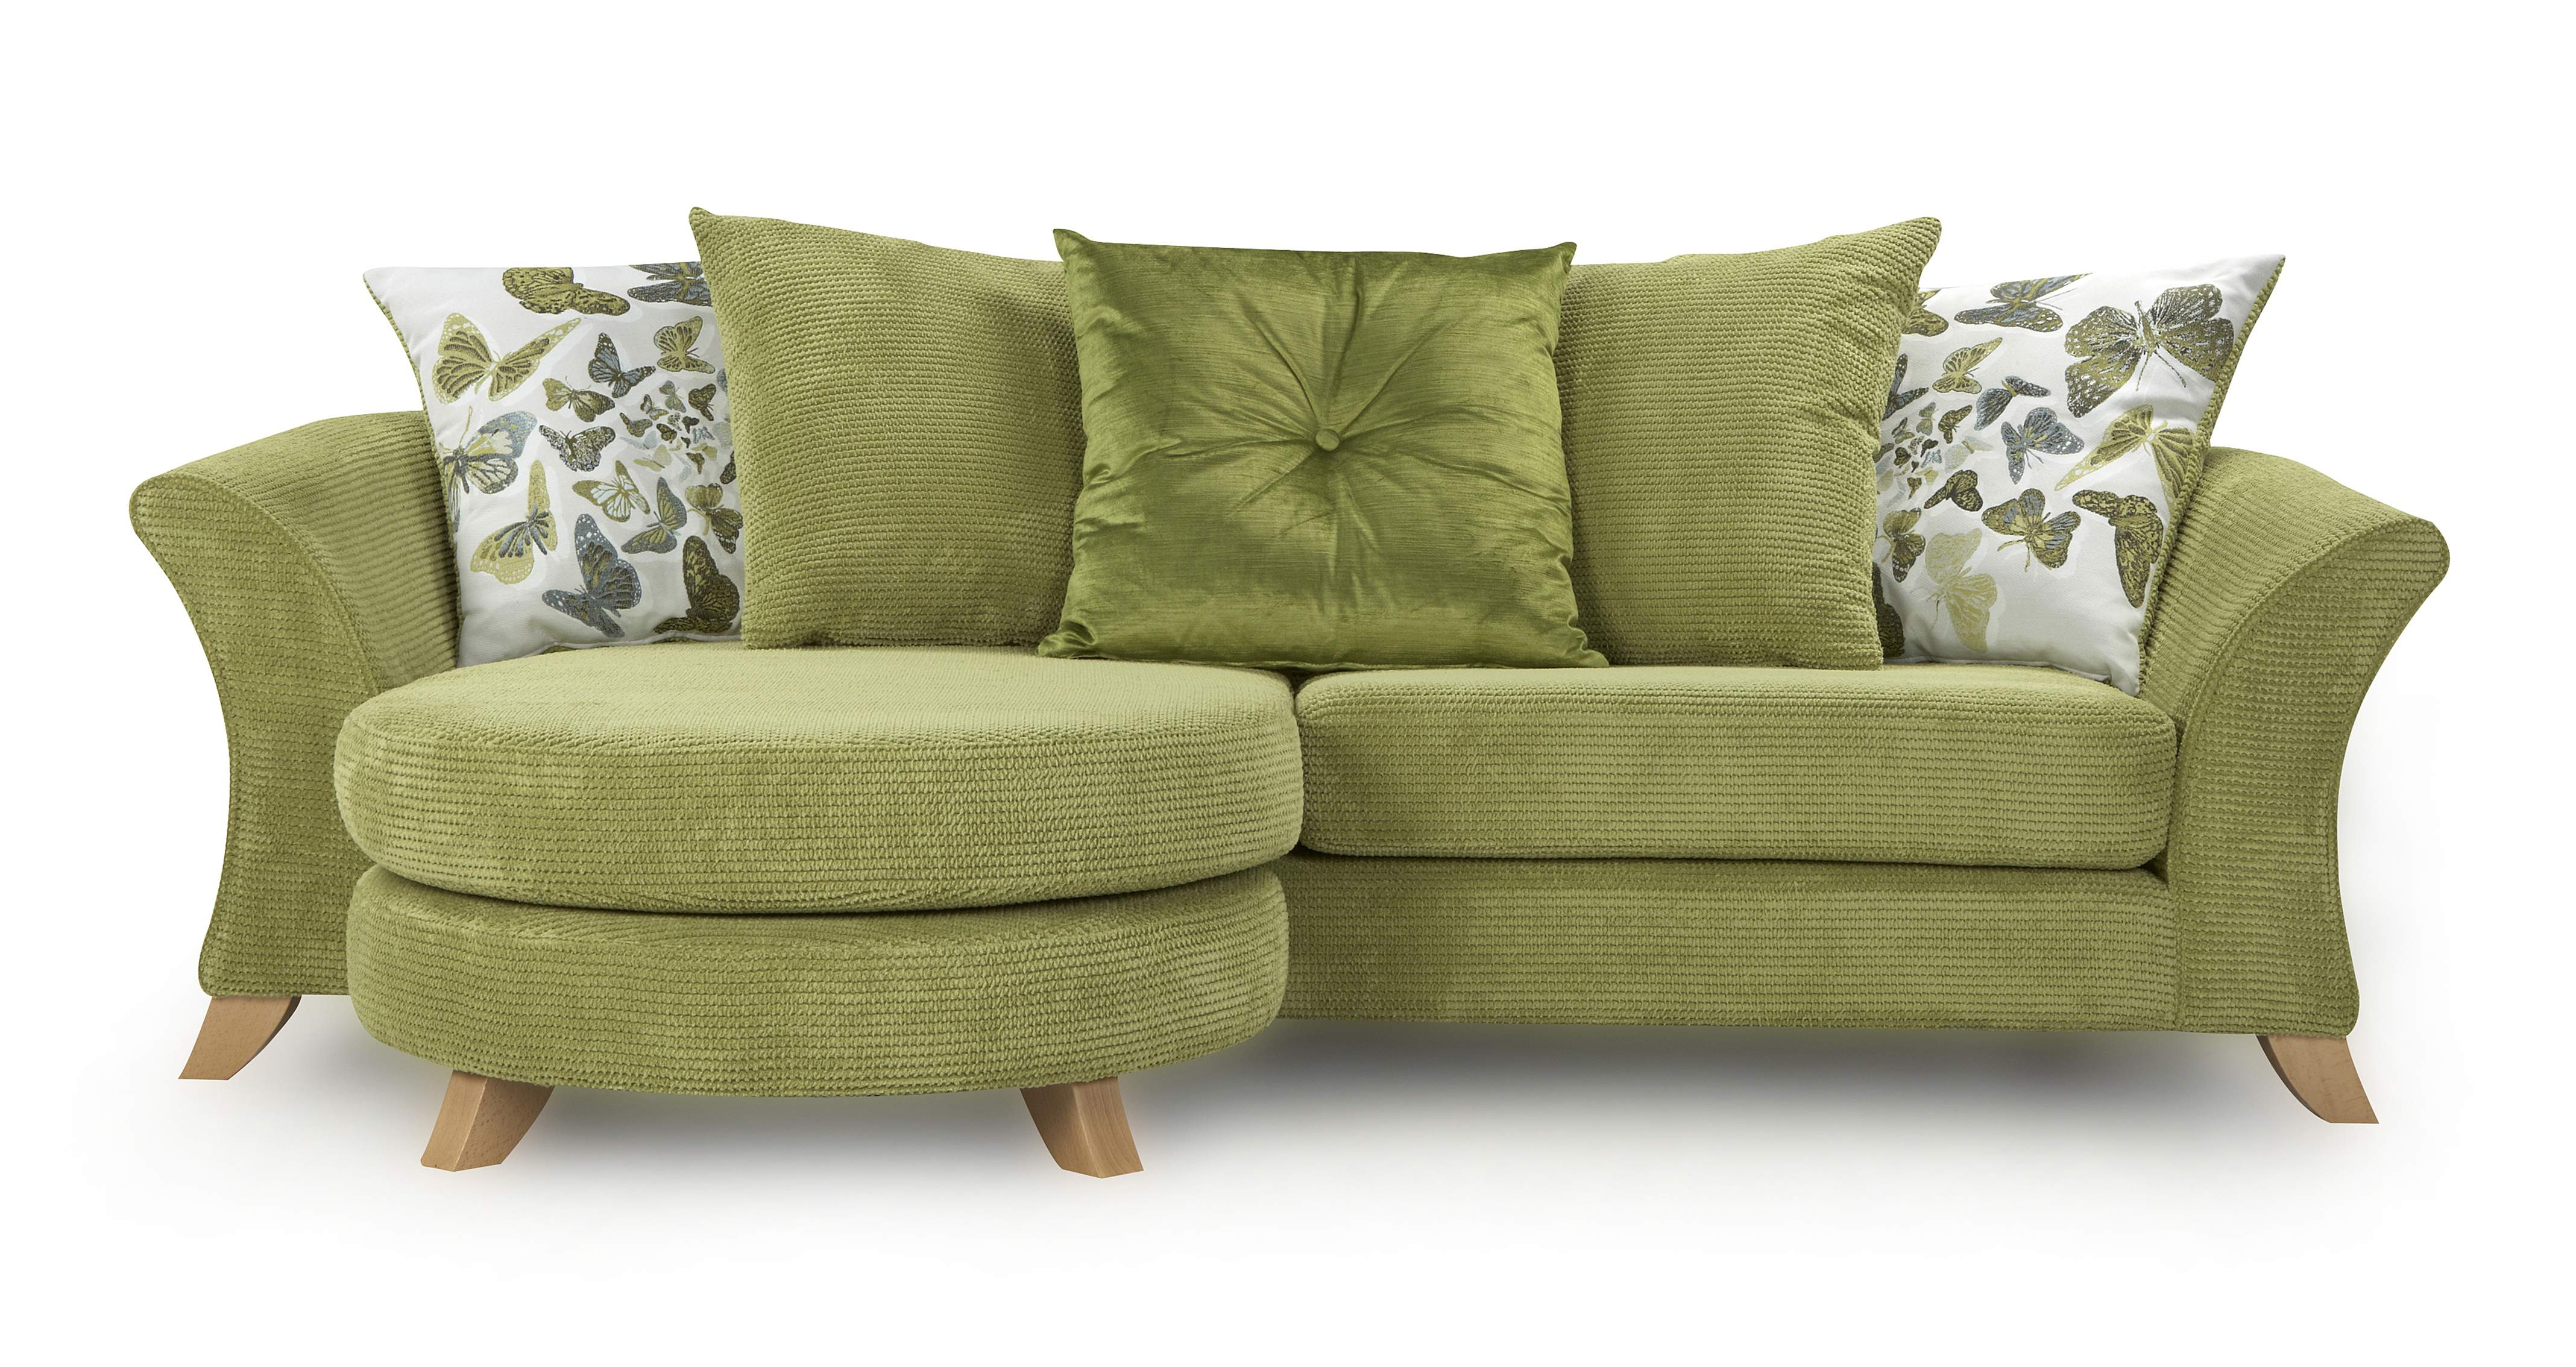 DFS Escape Set - 4 Seater Lime Green Lounger Sofa, Accent Chair and Foot Stool : eBay